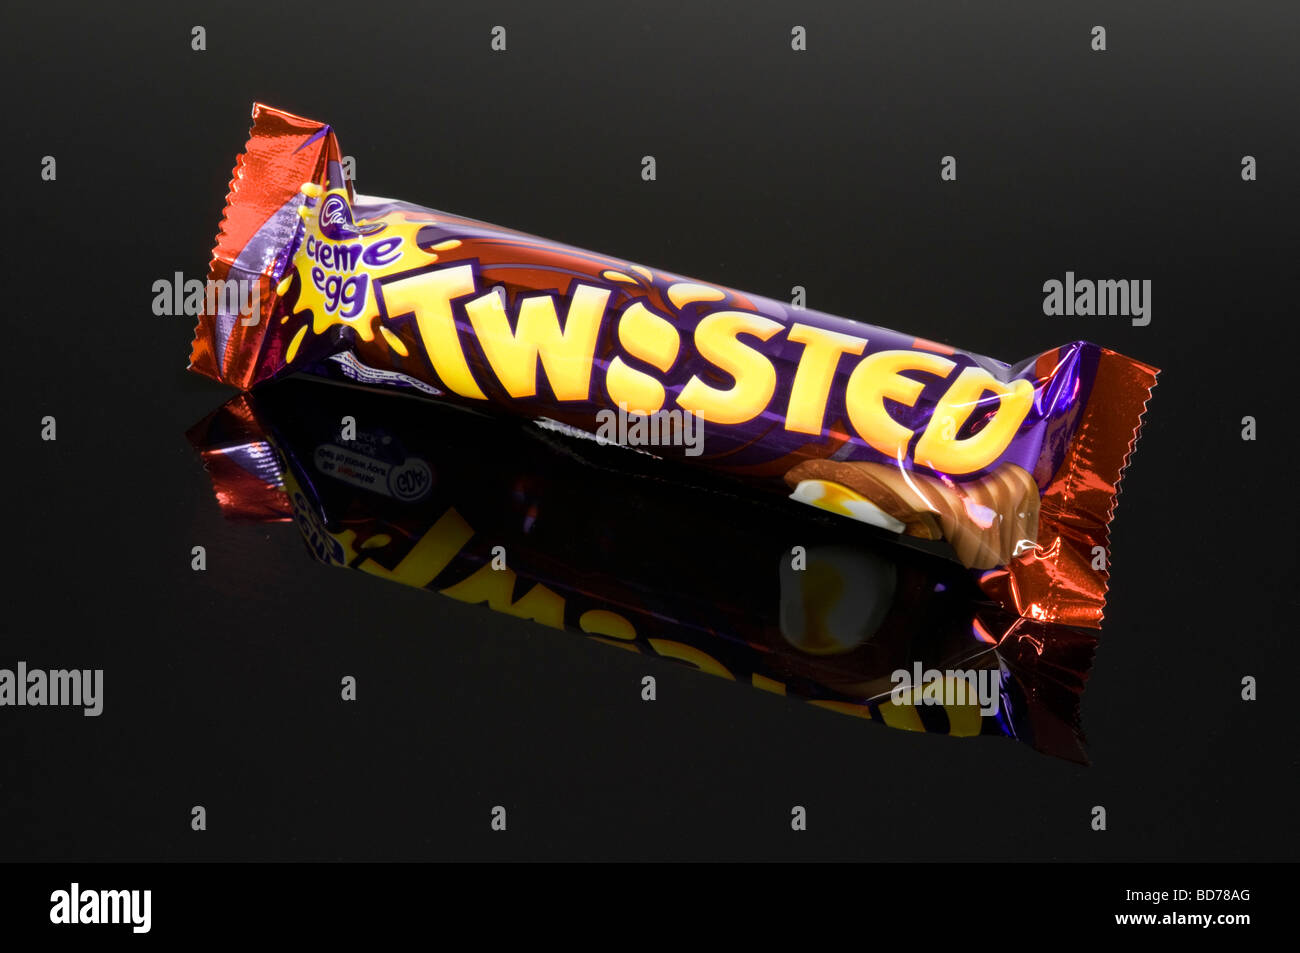 Creme Egg Twisted Chocolate Bar On Black Background Shot In Studio - Stock Image